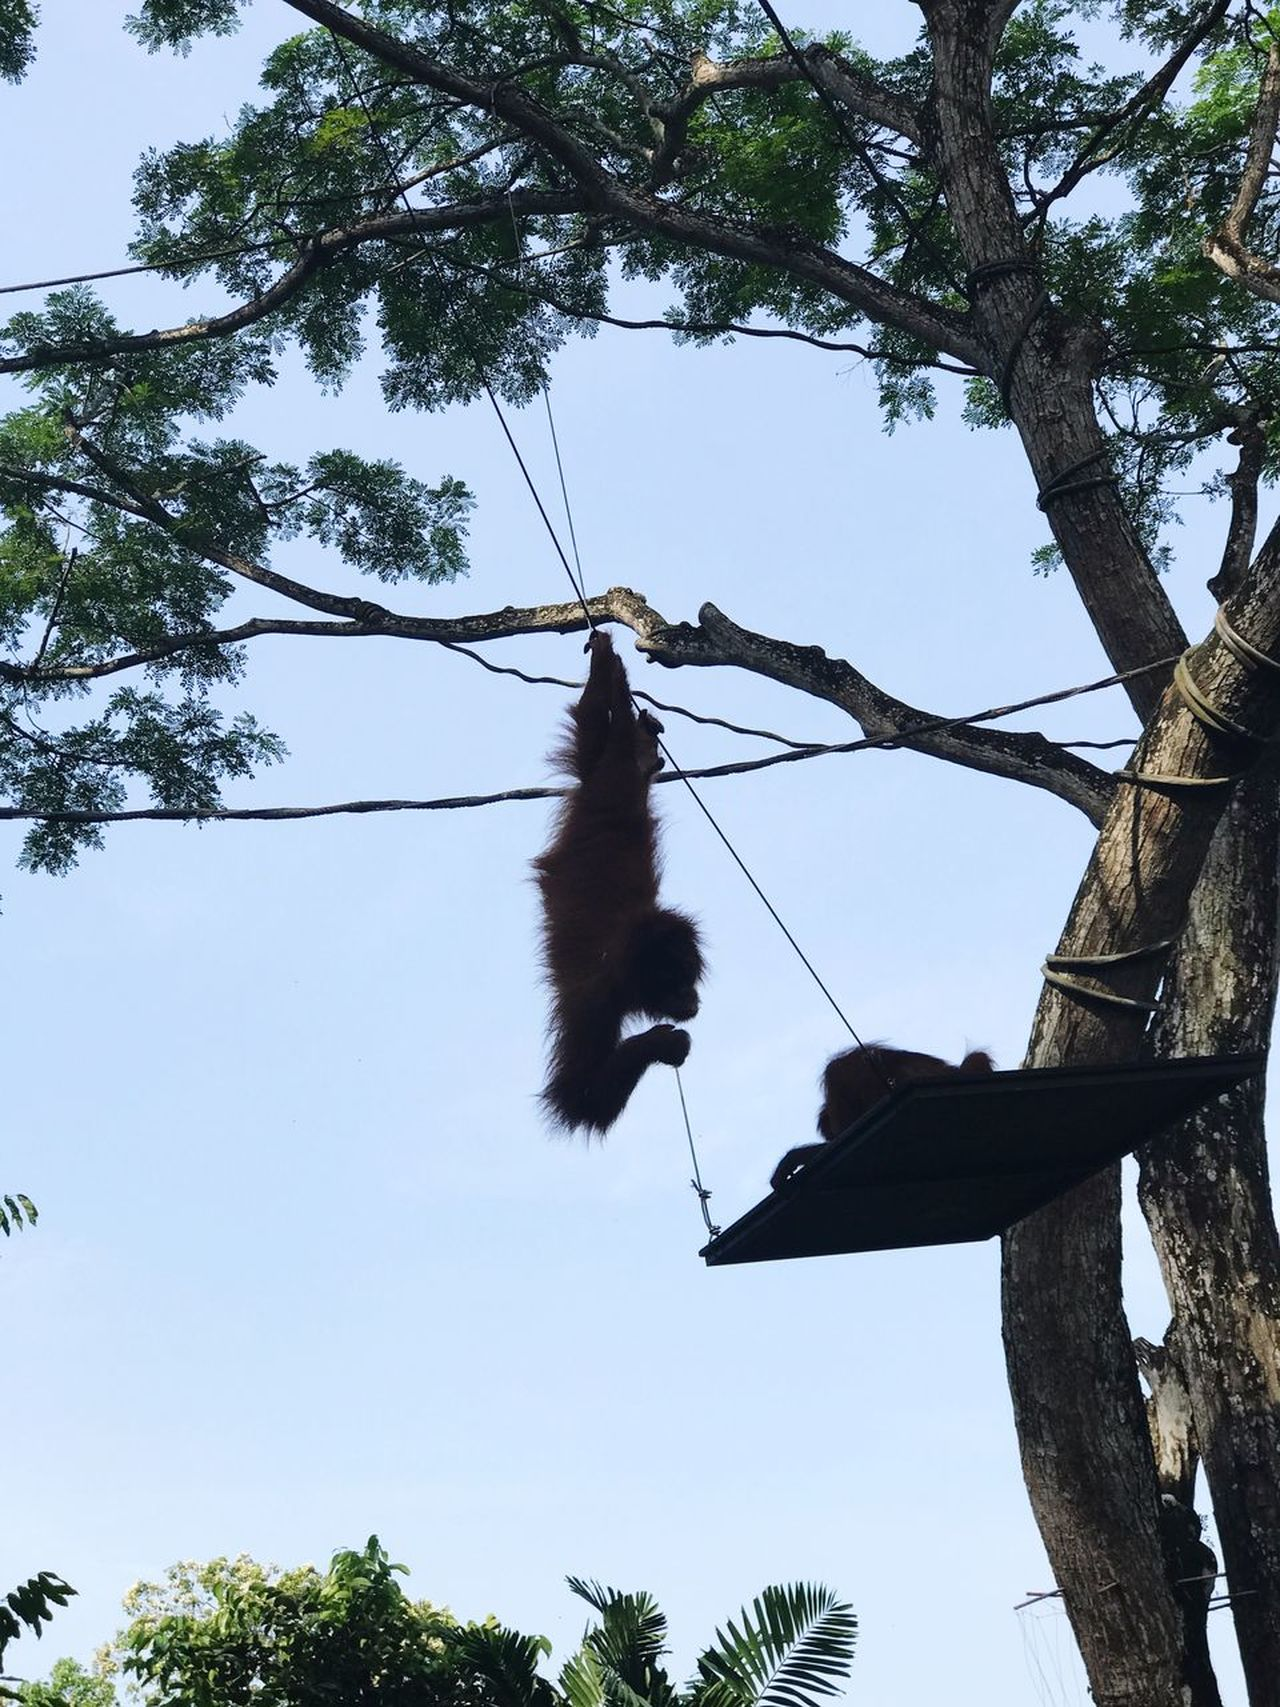 Tree Low Angle View Hanging Branch Bat - Animal No People Day Nature Outdoors One Animal Animal Themes Sky Clear Sky Orangutan Ape Singapore Singapore Zoological Garden Singapore Zoo